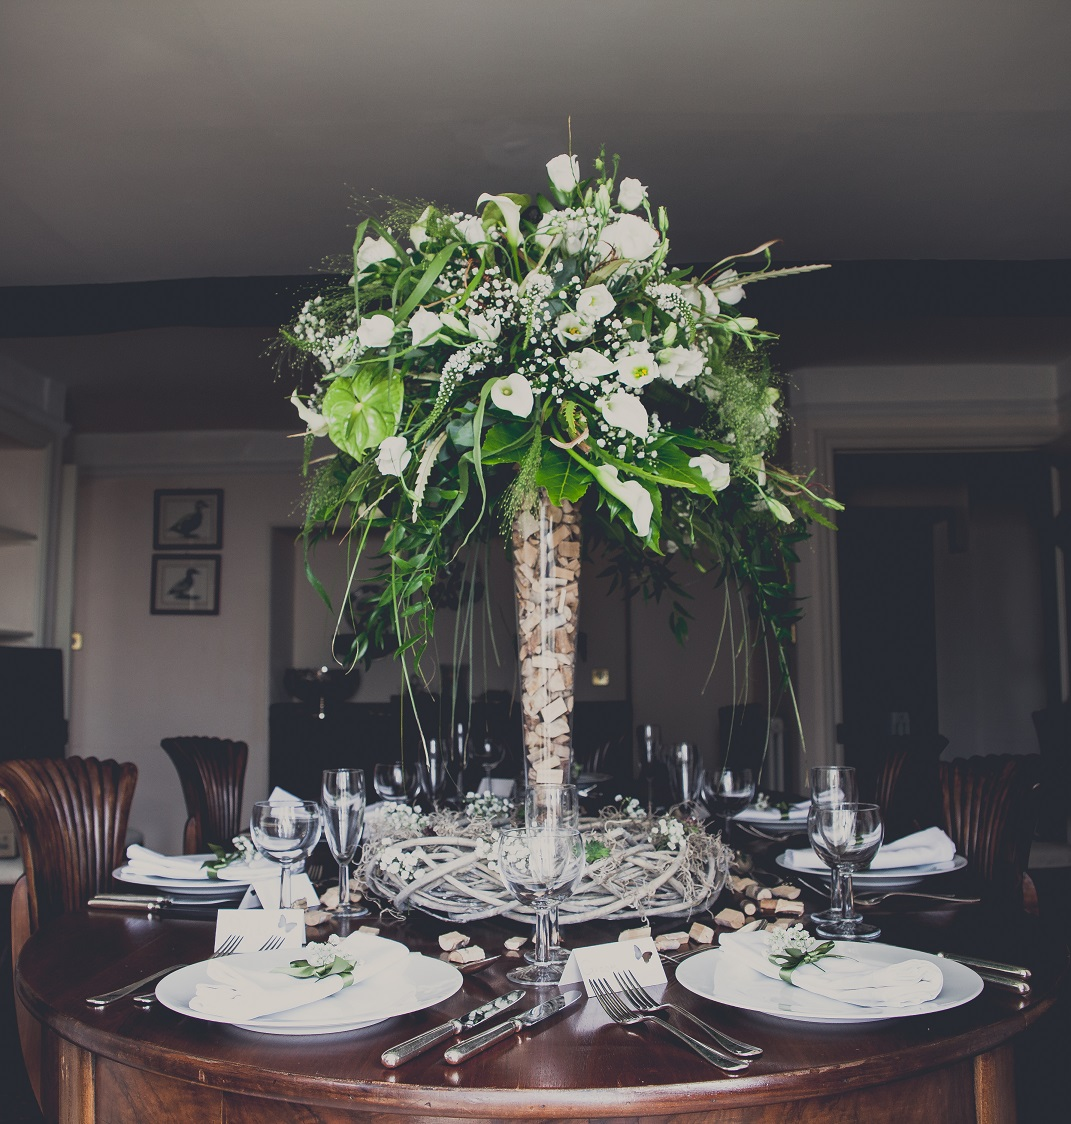 Finding the right wedding suppliers